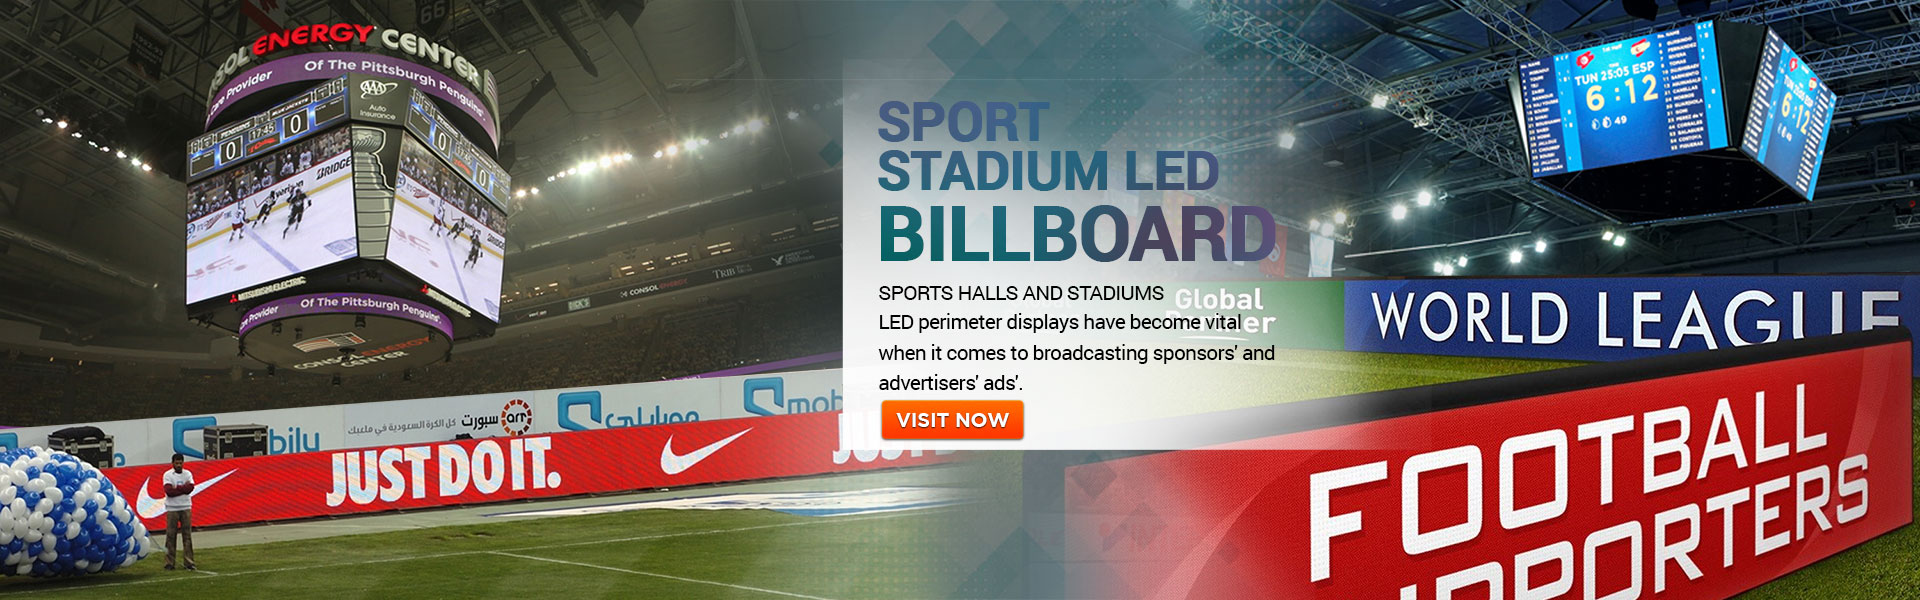 Unilight Sport stadium LED display